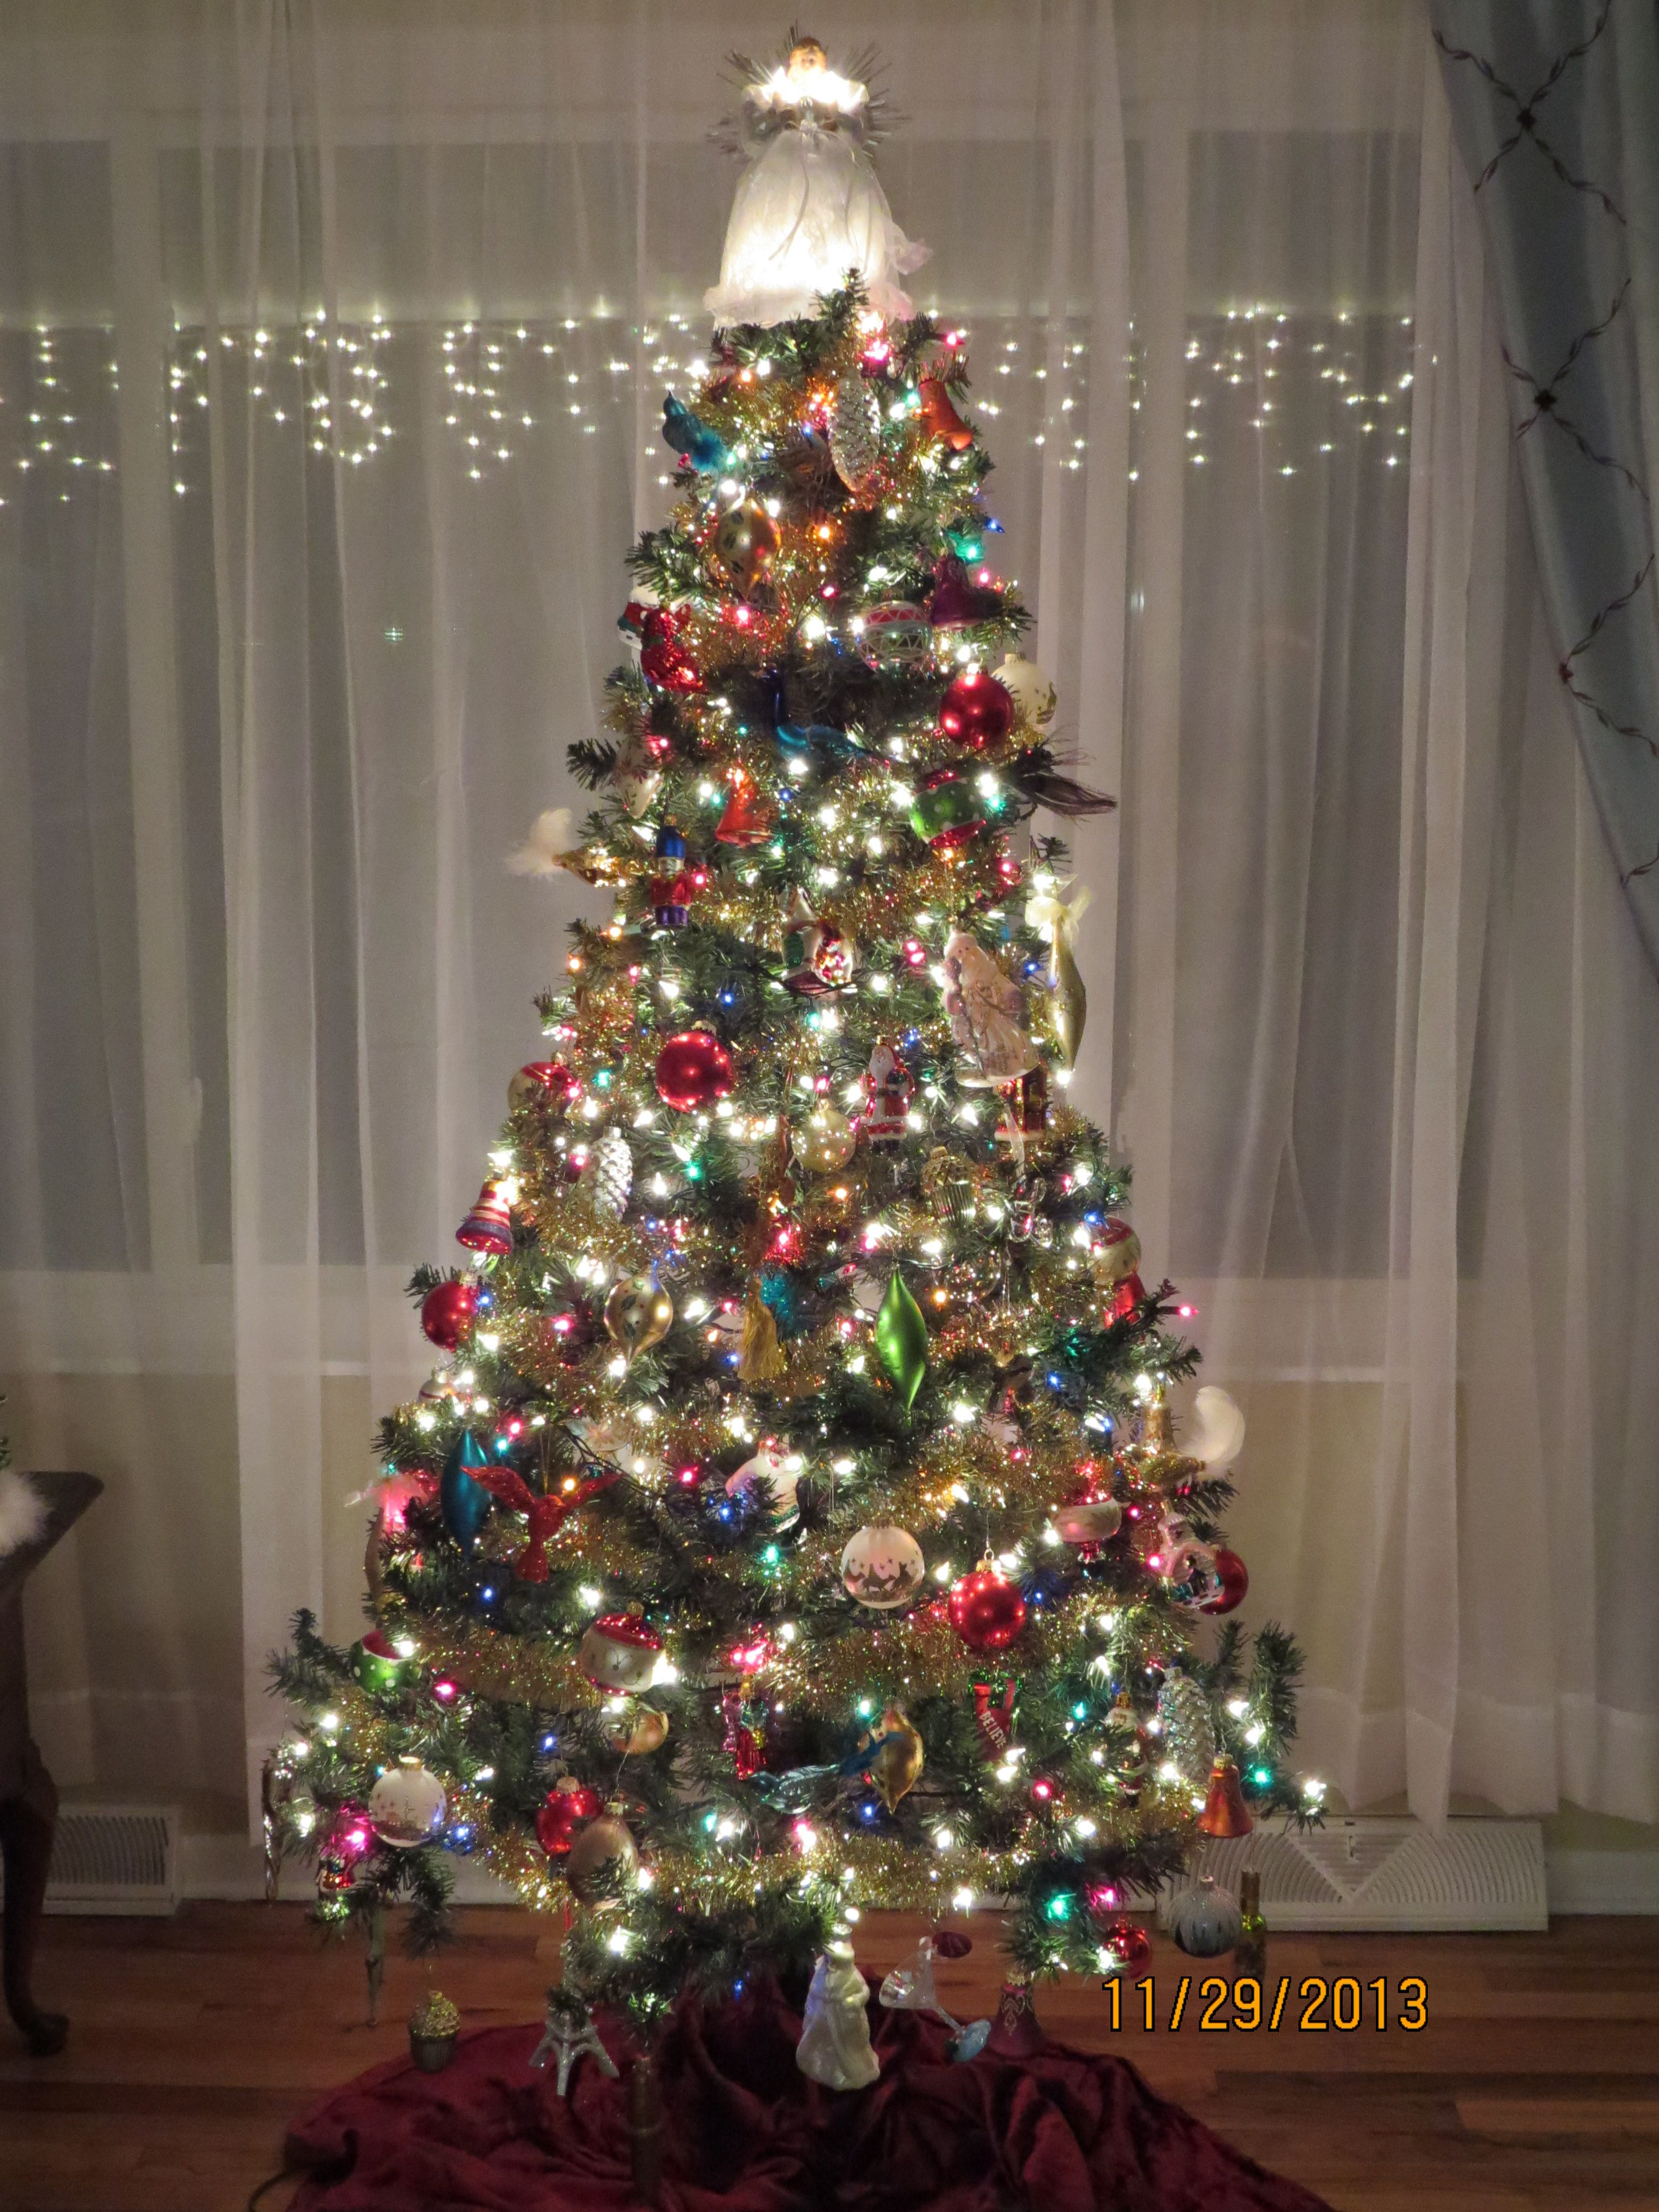 10 Elegant Christmas Tree Decorating Ideas With Multi Colored Lights multi color lights on christmas tree with colorful glass ornaments 2021